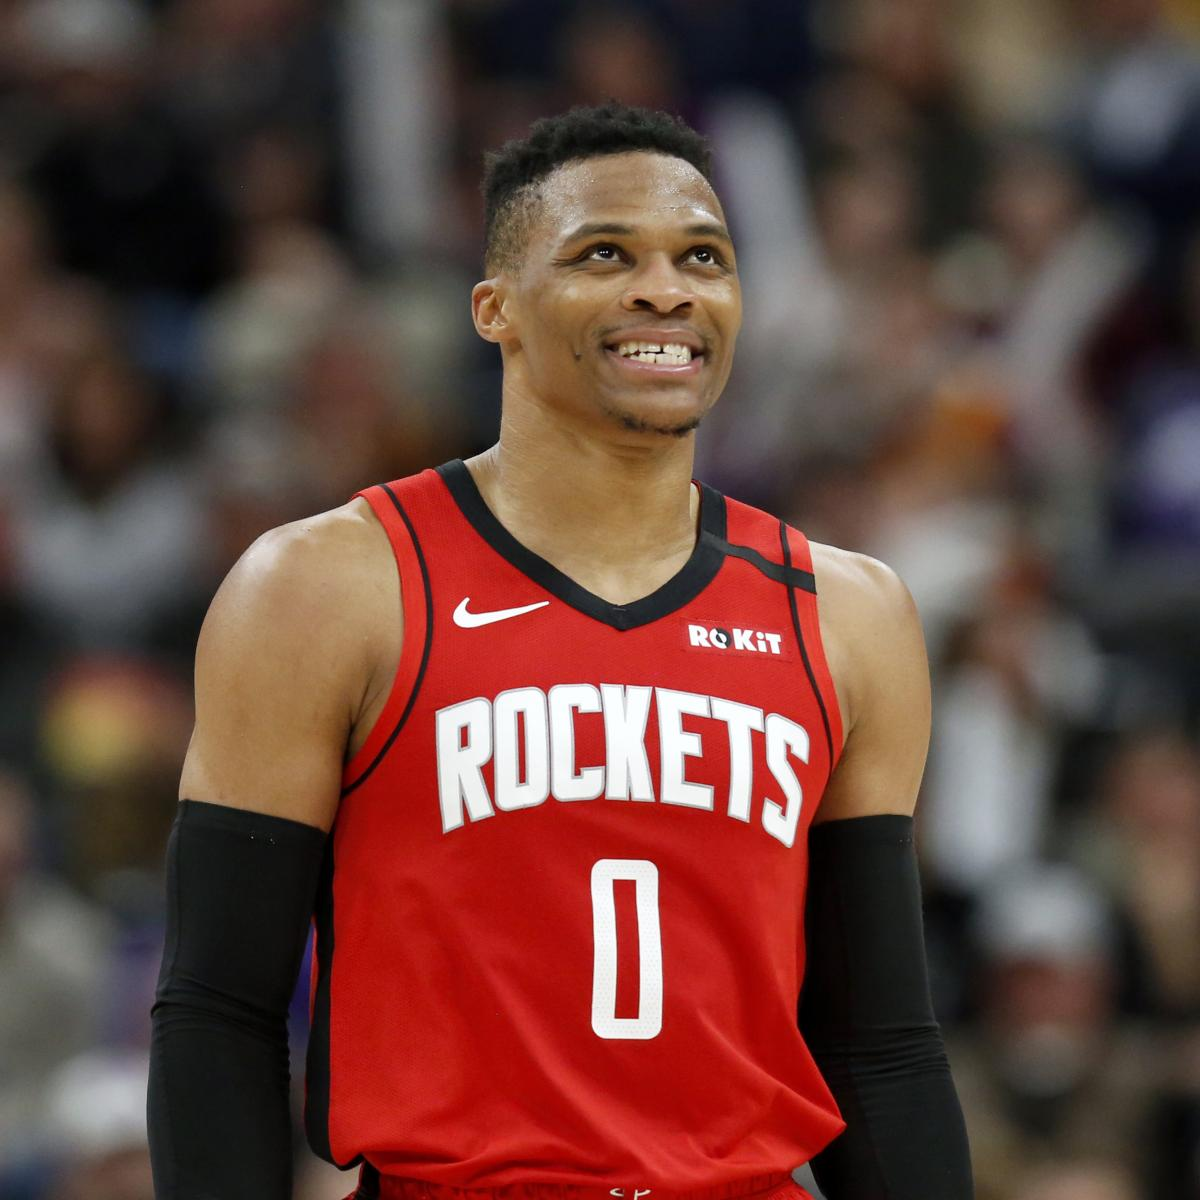 Rockets PG Russell Westbrook Says 'We're the Only Team That's in Our Way'